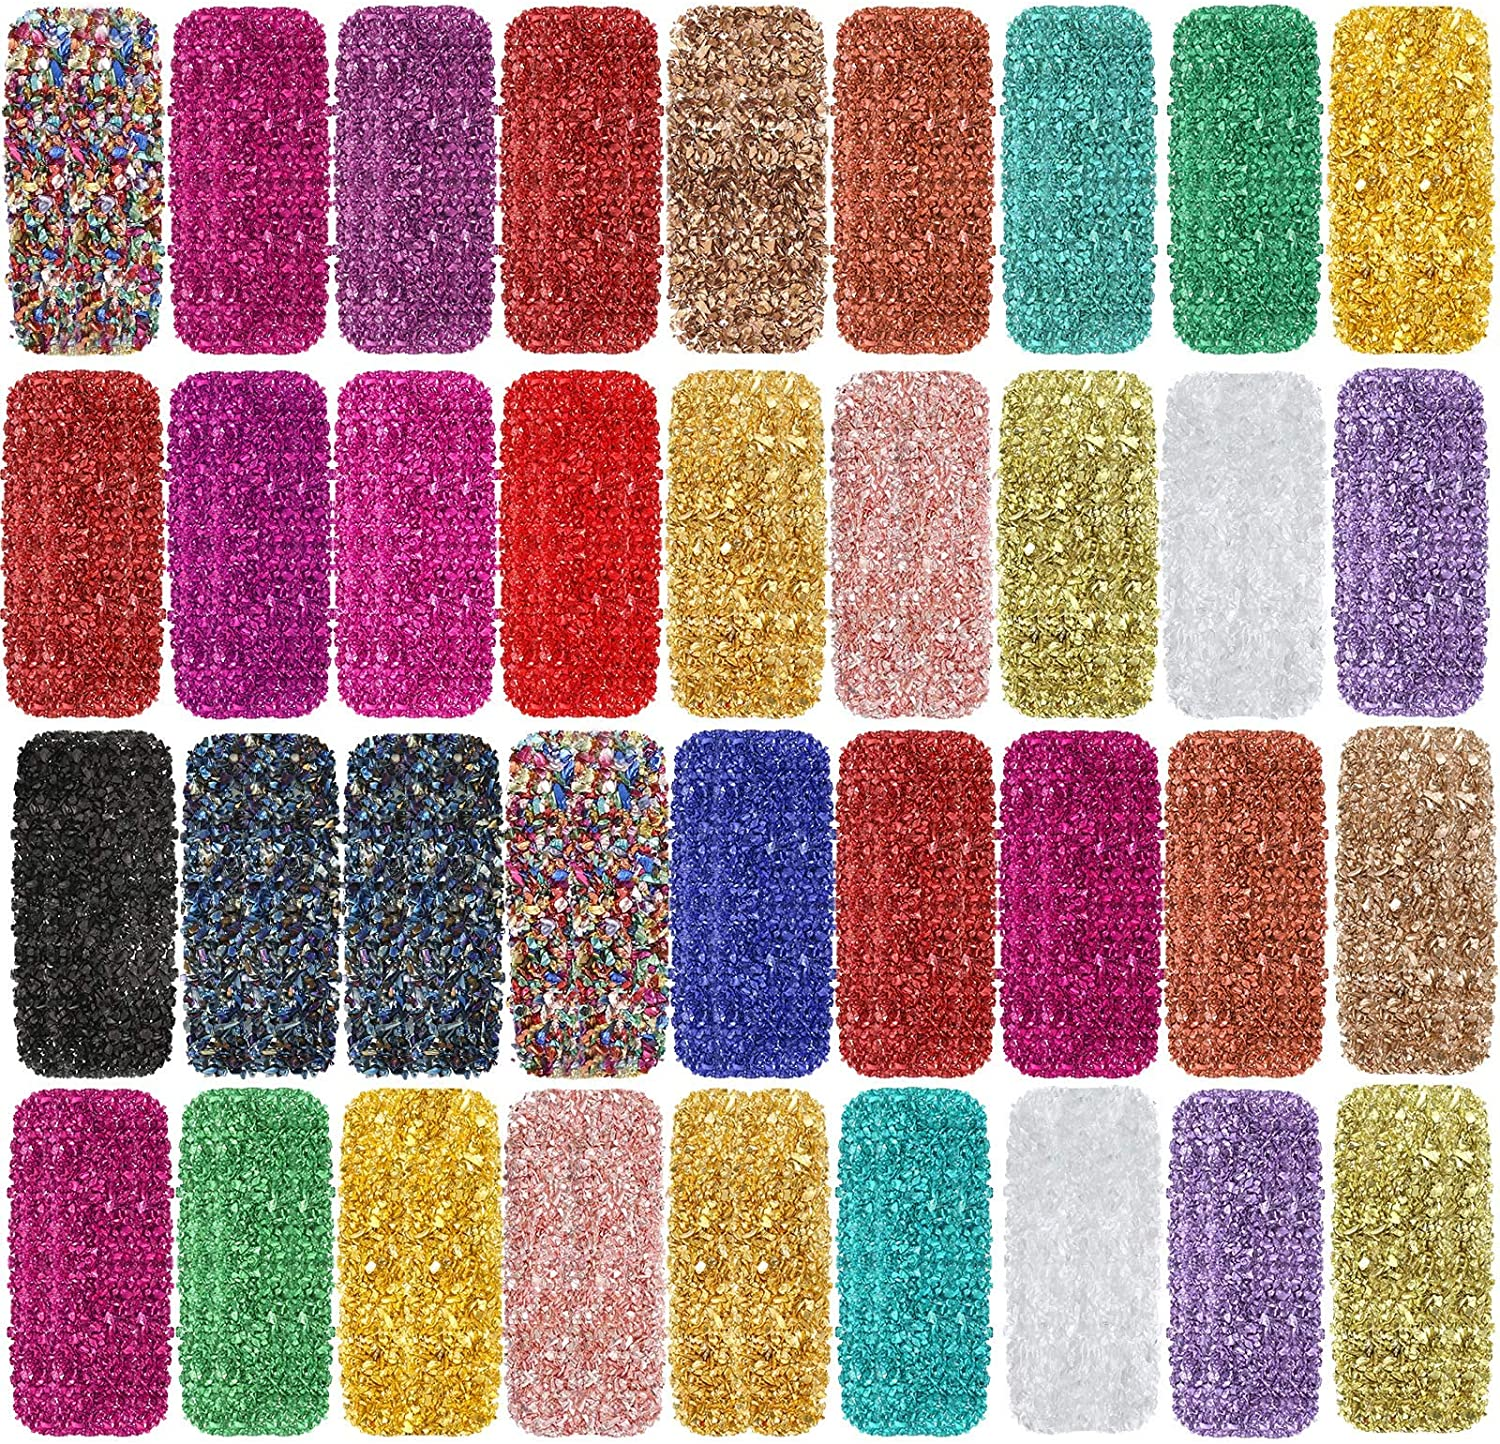 36 Pieces Crushed Glass Irregular Glass Sequins Crushed Glass Chips for Nail Art Decoration, Resin Mold, Handmade Crafts, Phone Case Making, Scrapbooking, Jewelry Making, 36 Colors